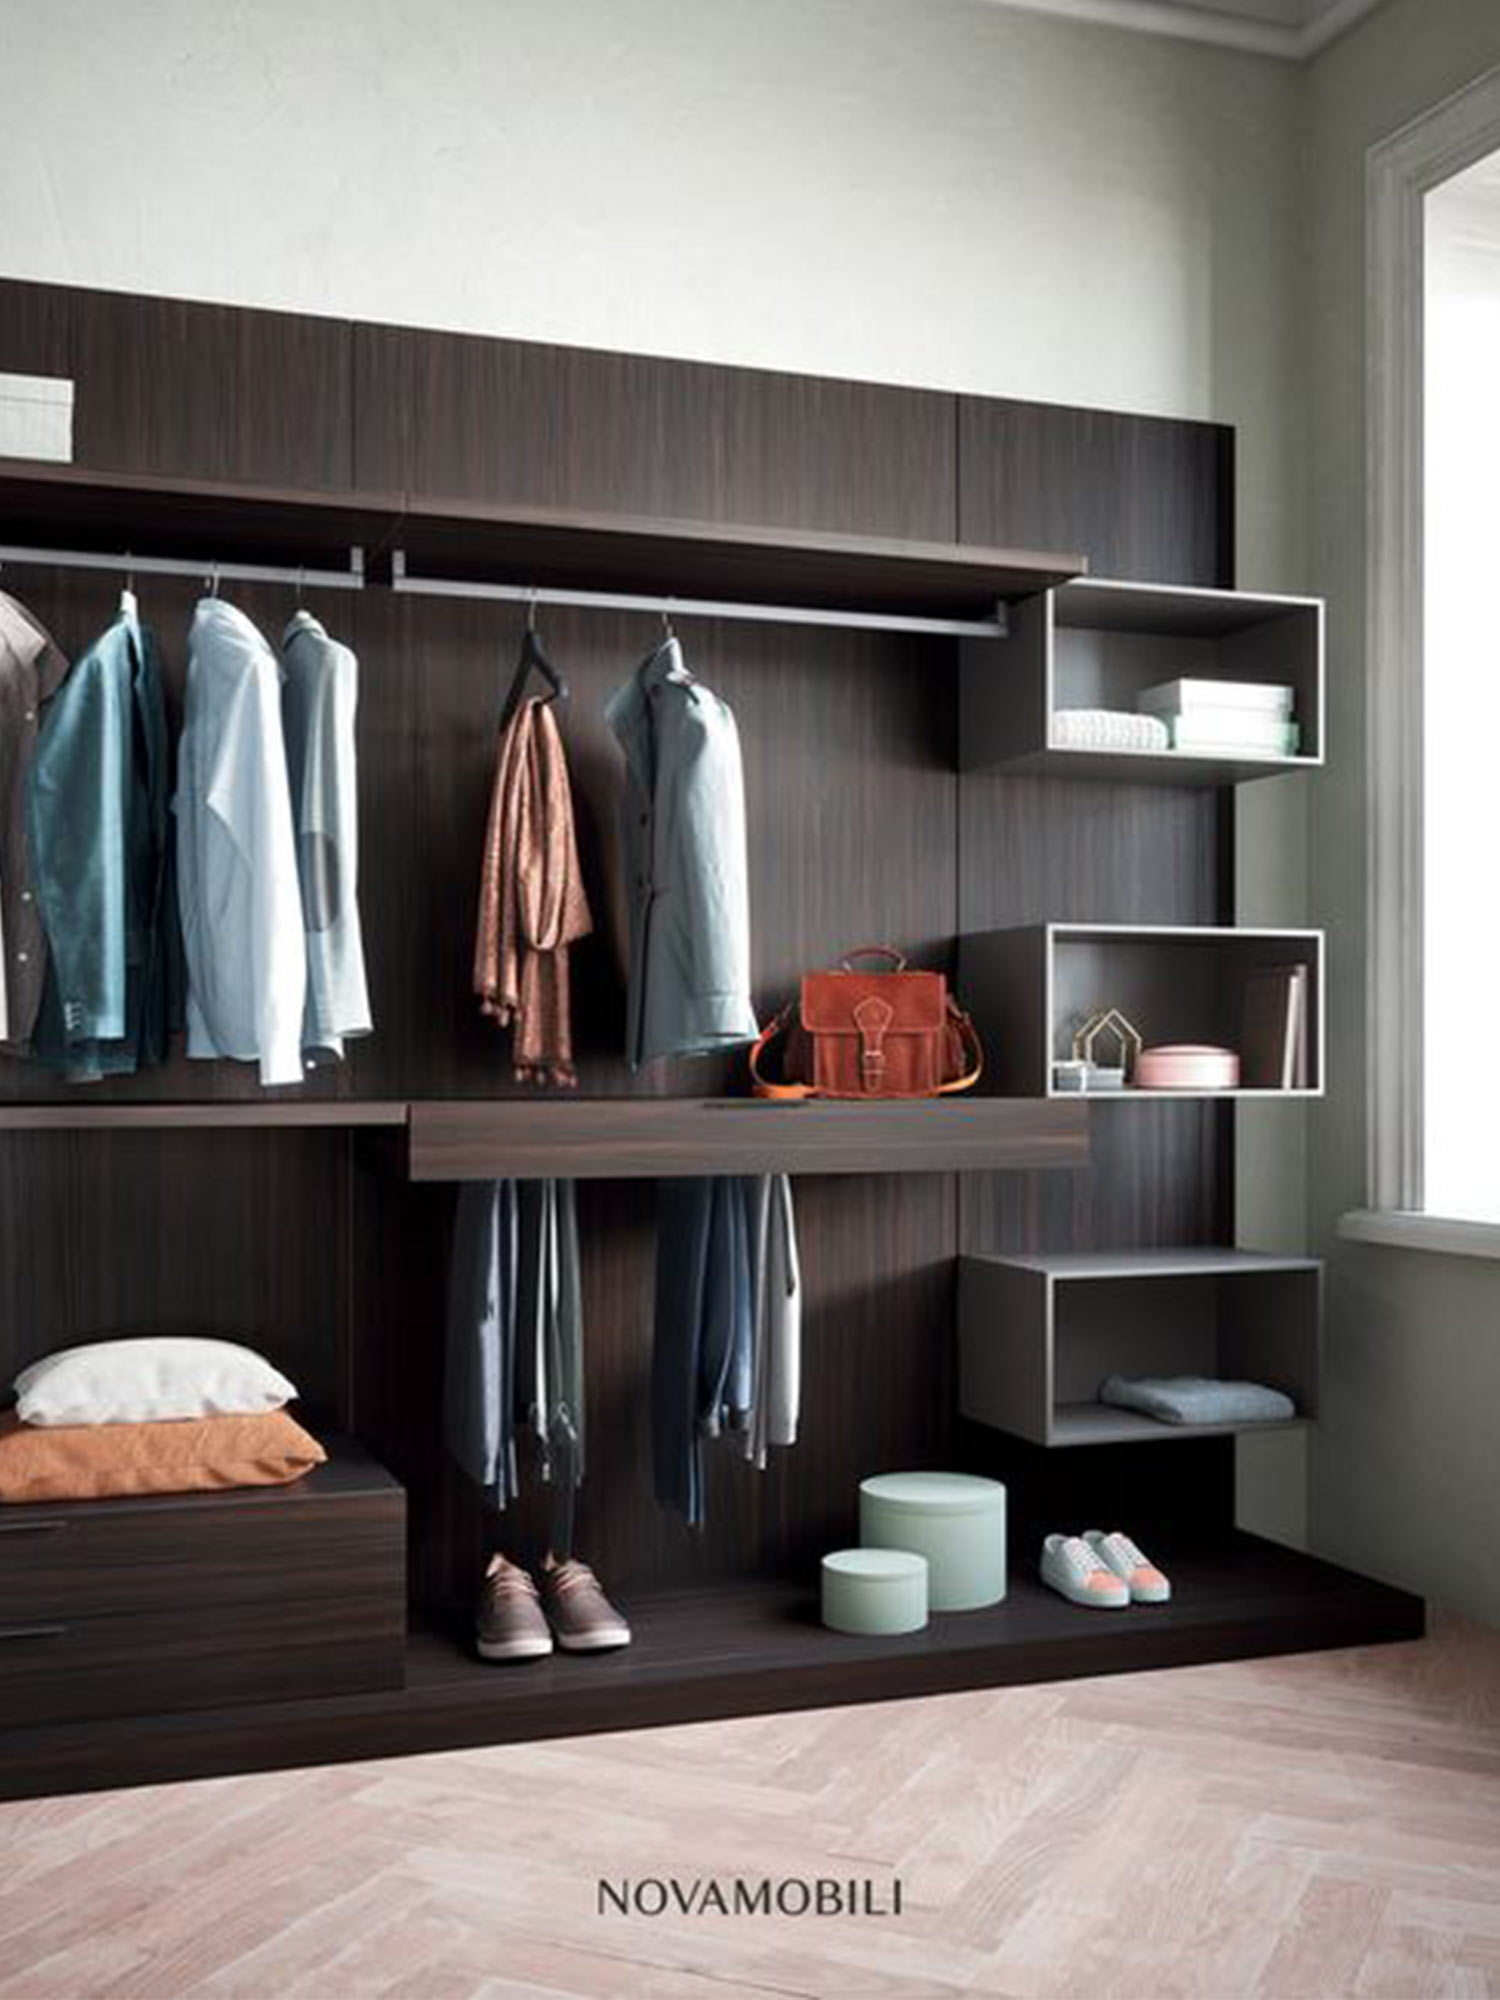 Bedroom wardrobe storage by Hubble